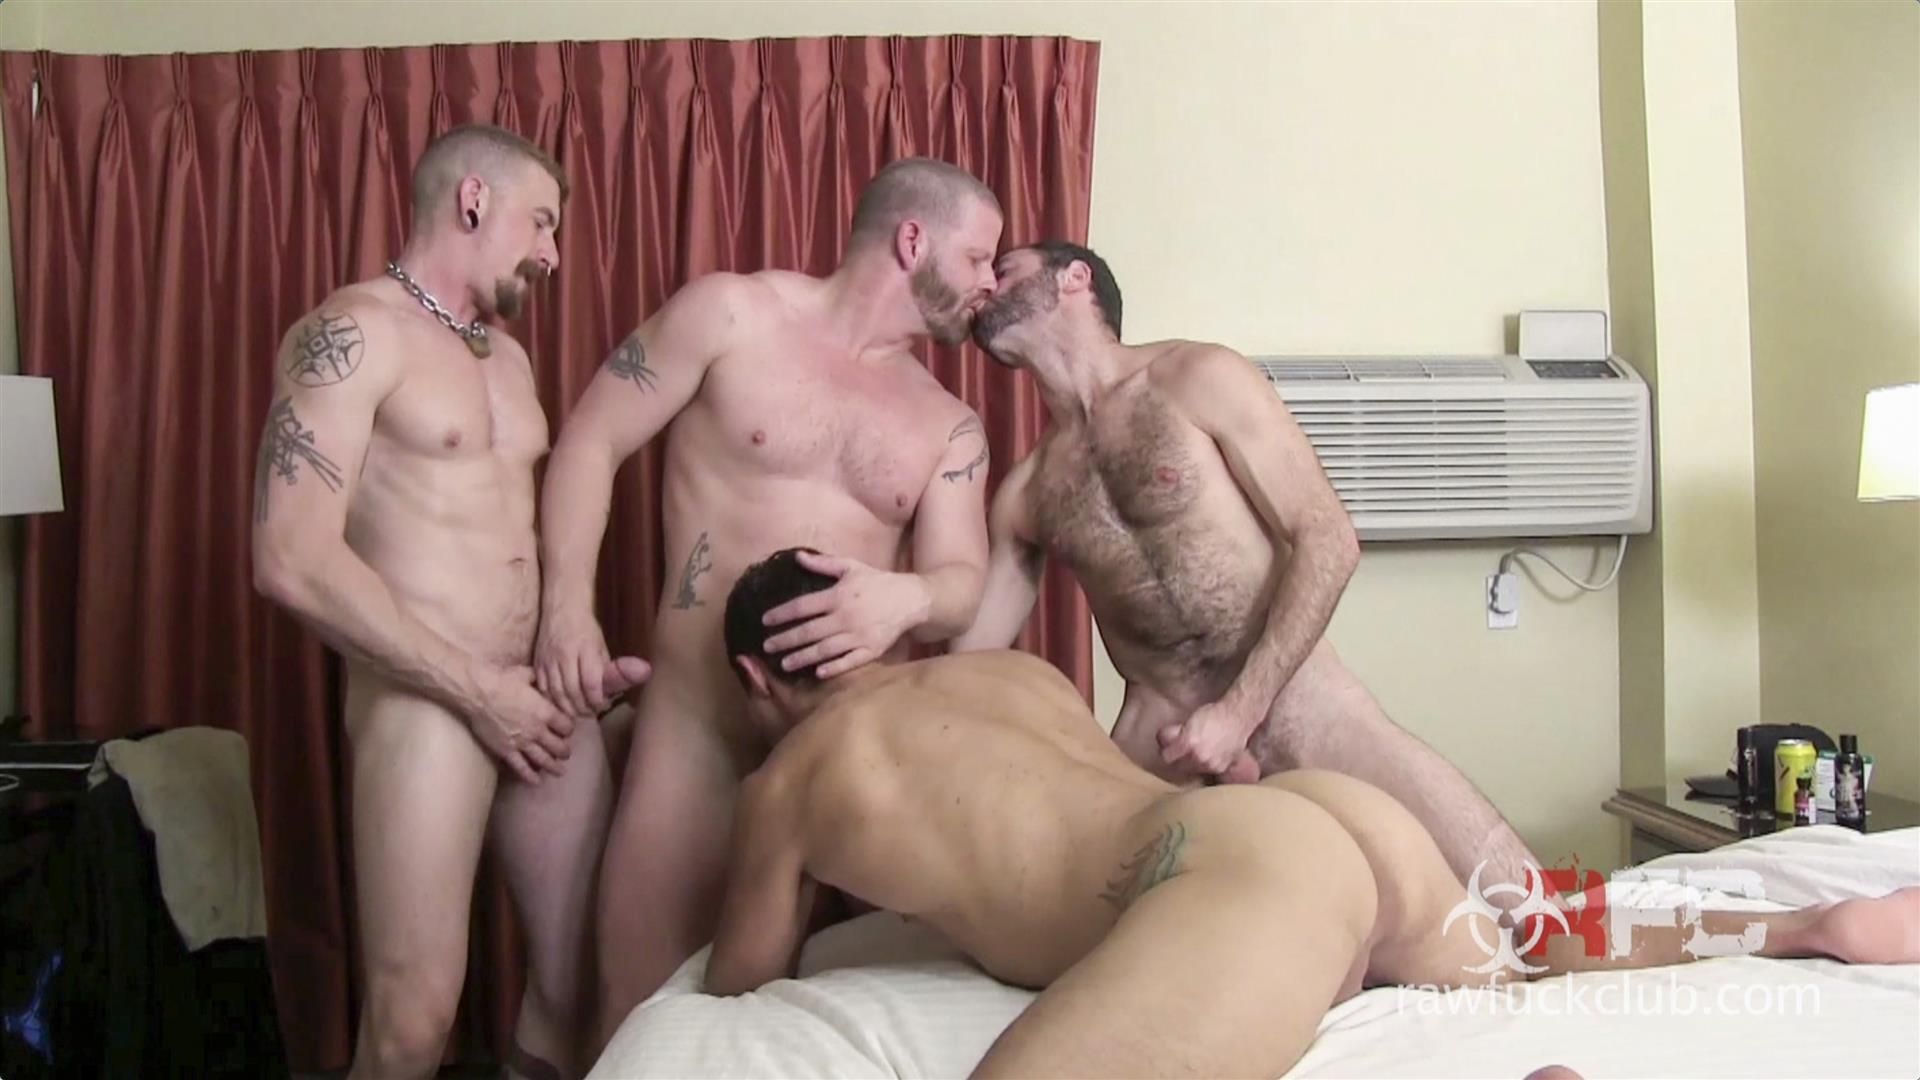 Raw-Fuck-Club-Dylan-Saunders-and-Dusty-Williams-and-Jeff-Kendall-and-Jeremy-Stevens-BBBH-Amateur-Gay-Porn-10 Big Cock Amateur Hotel Bareback Sex Party